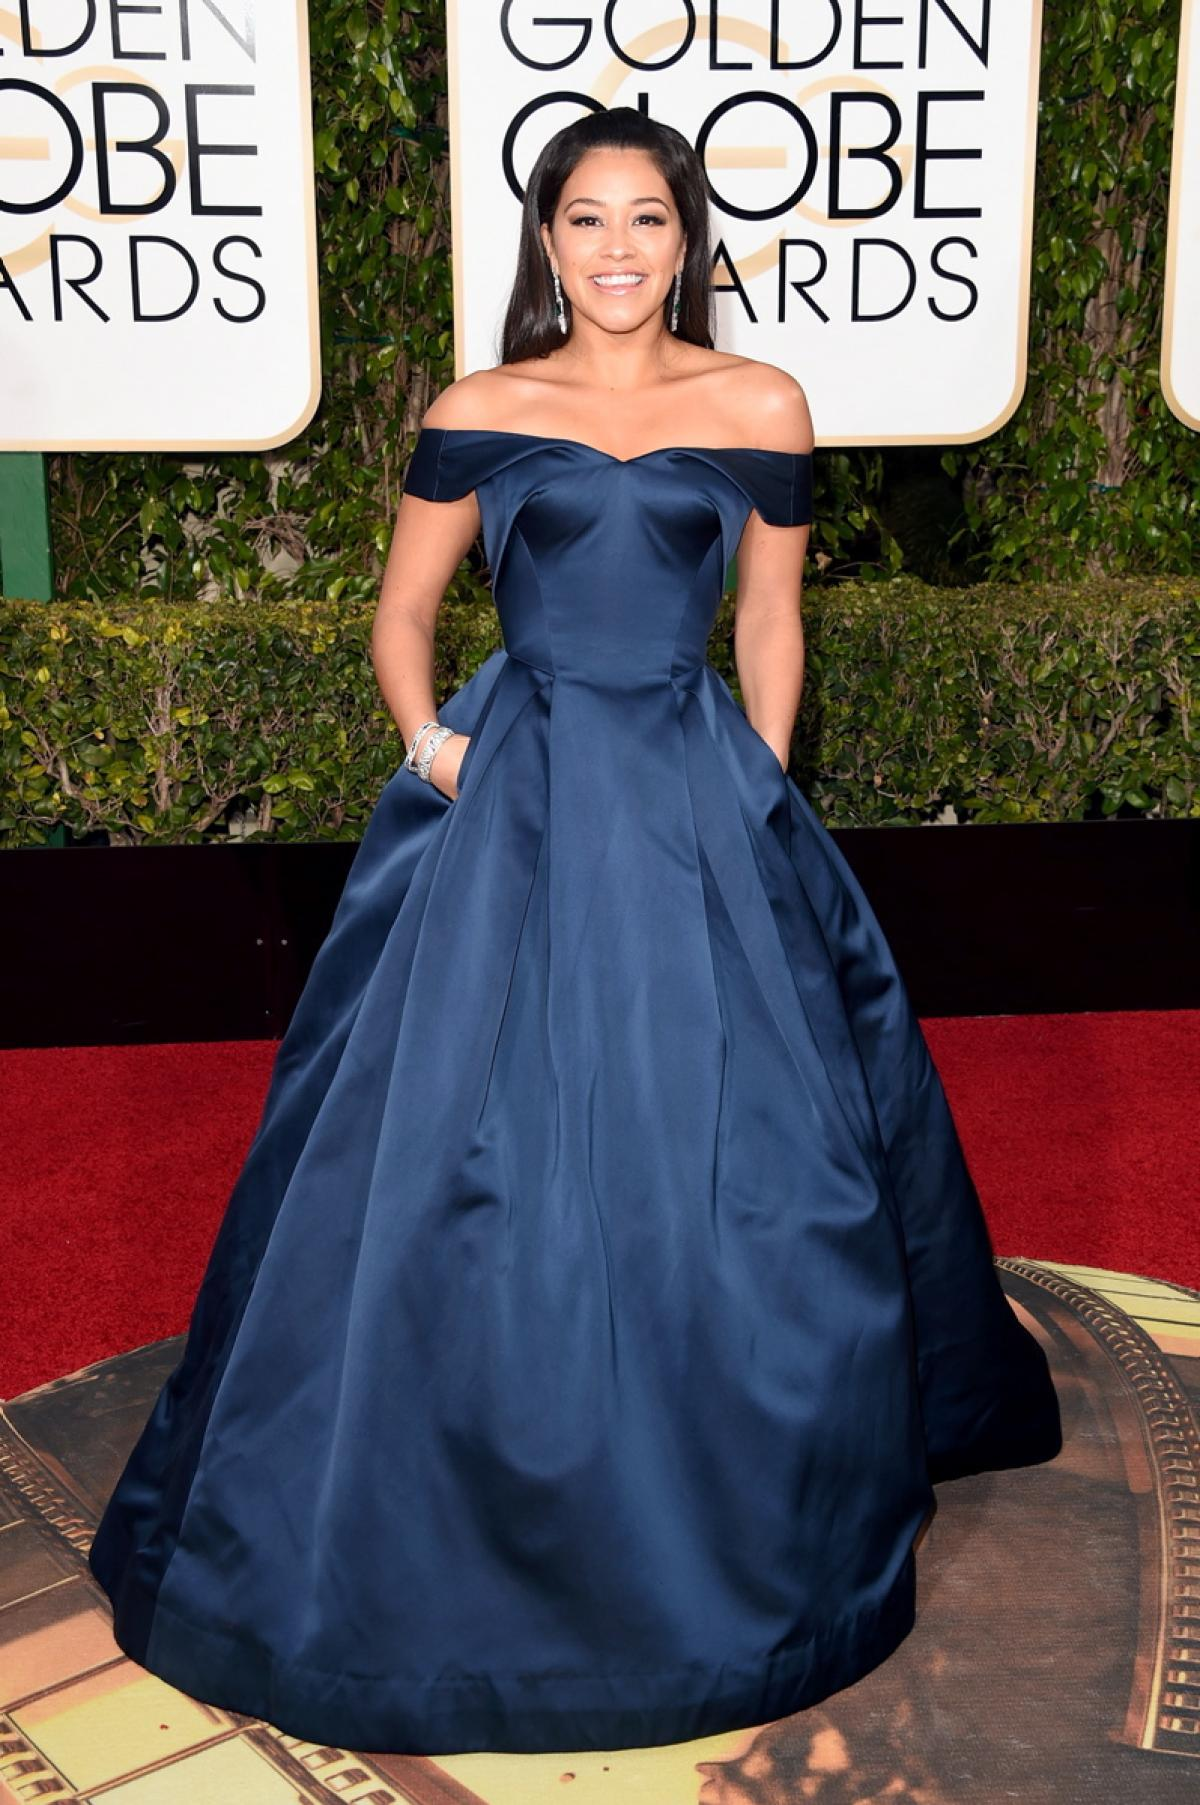 Golden Globe 2016: My Favorite Top Ten Red Carpet Dresses  The ...